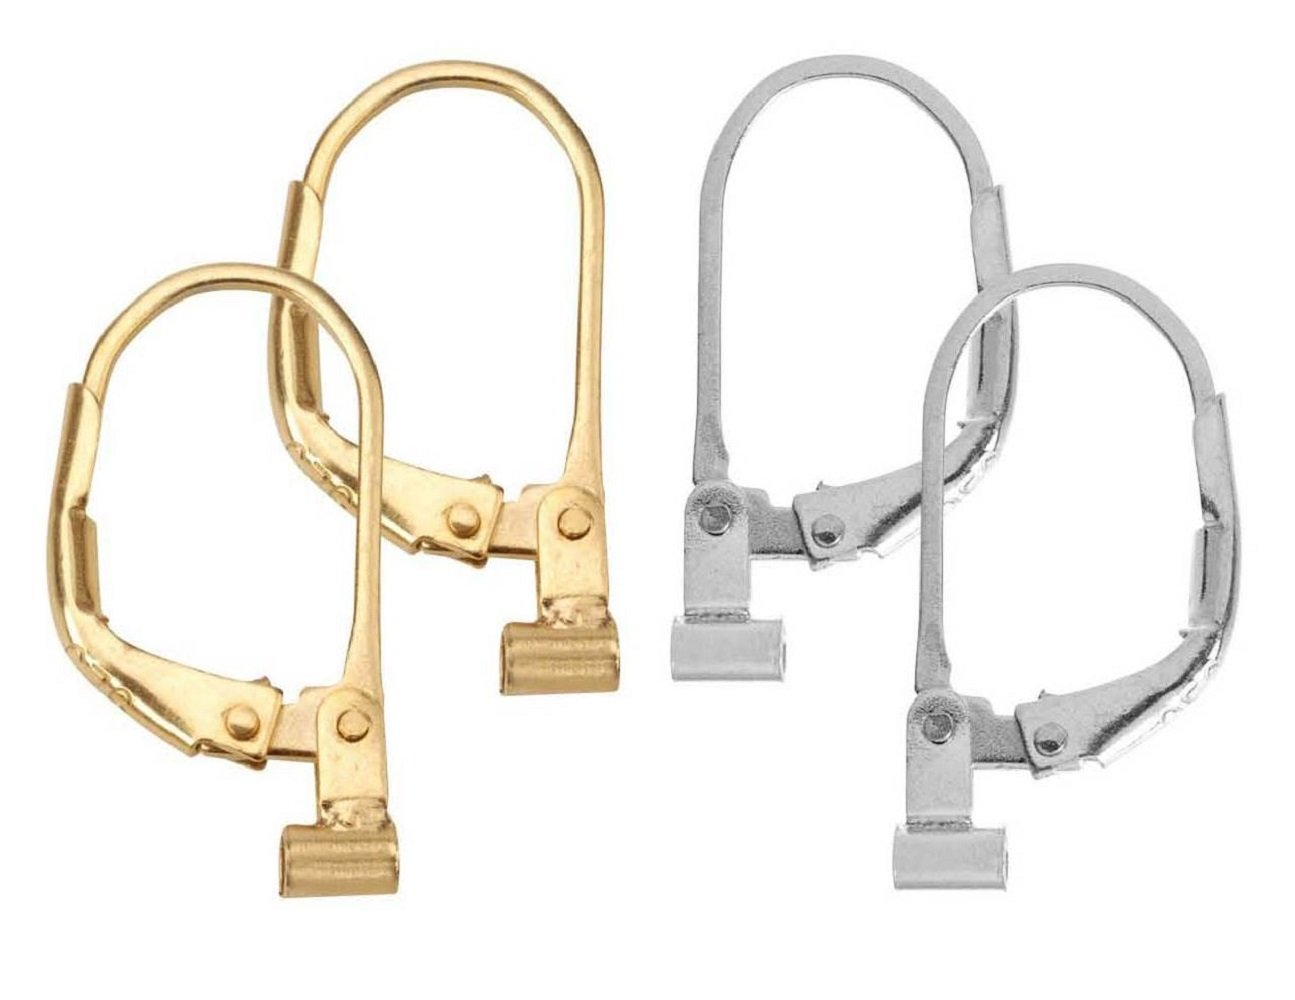 Convertiblez 2 Pair of Earring Converters Post to Lever Back 10k Gold Plated and Silver Alloy